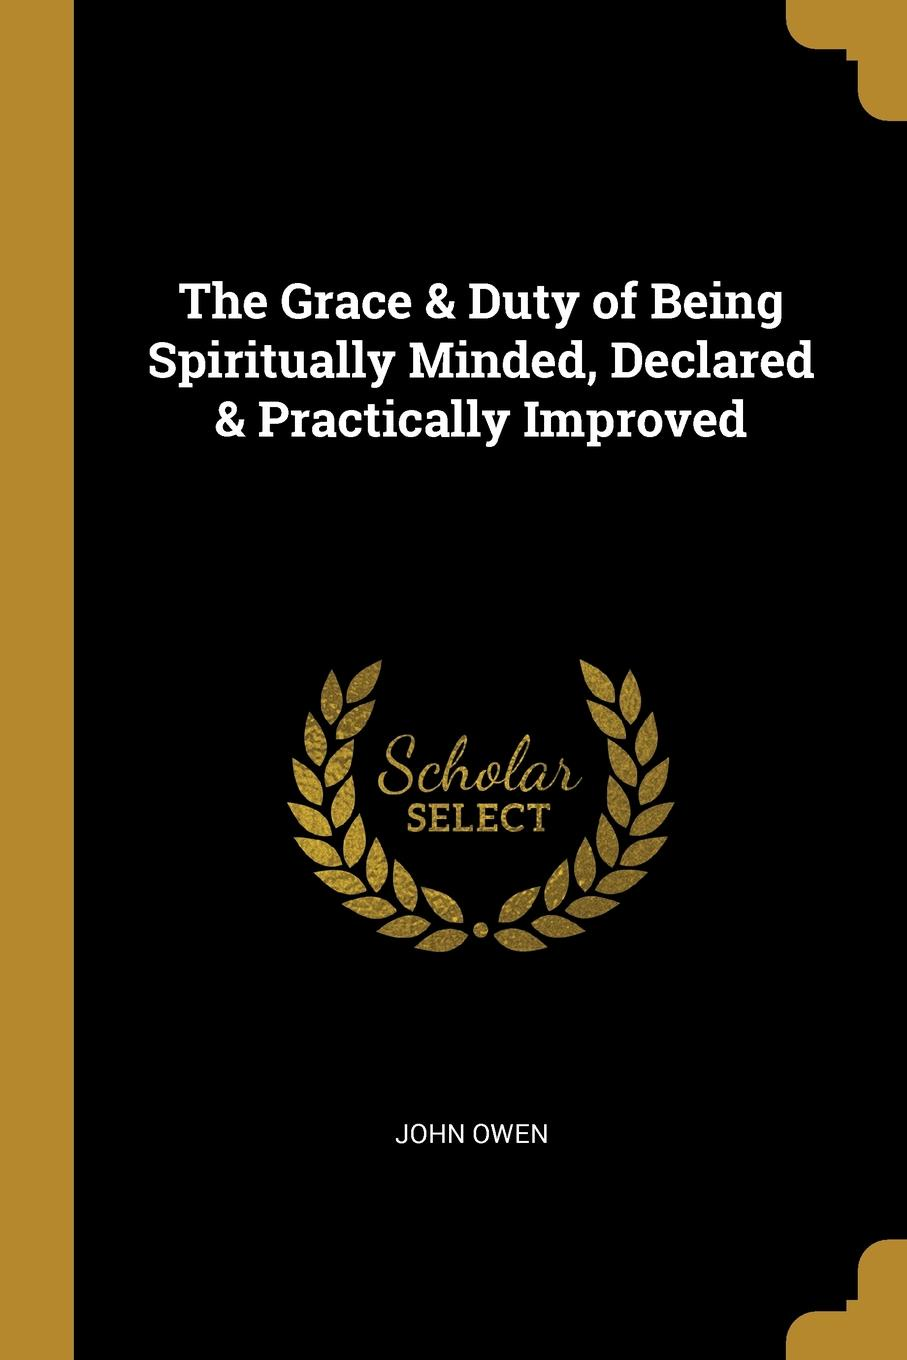 John Owen. The Grace . Duty of Being Spiritually Minded, Declared . Practically Improved